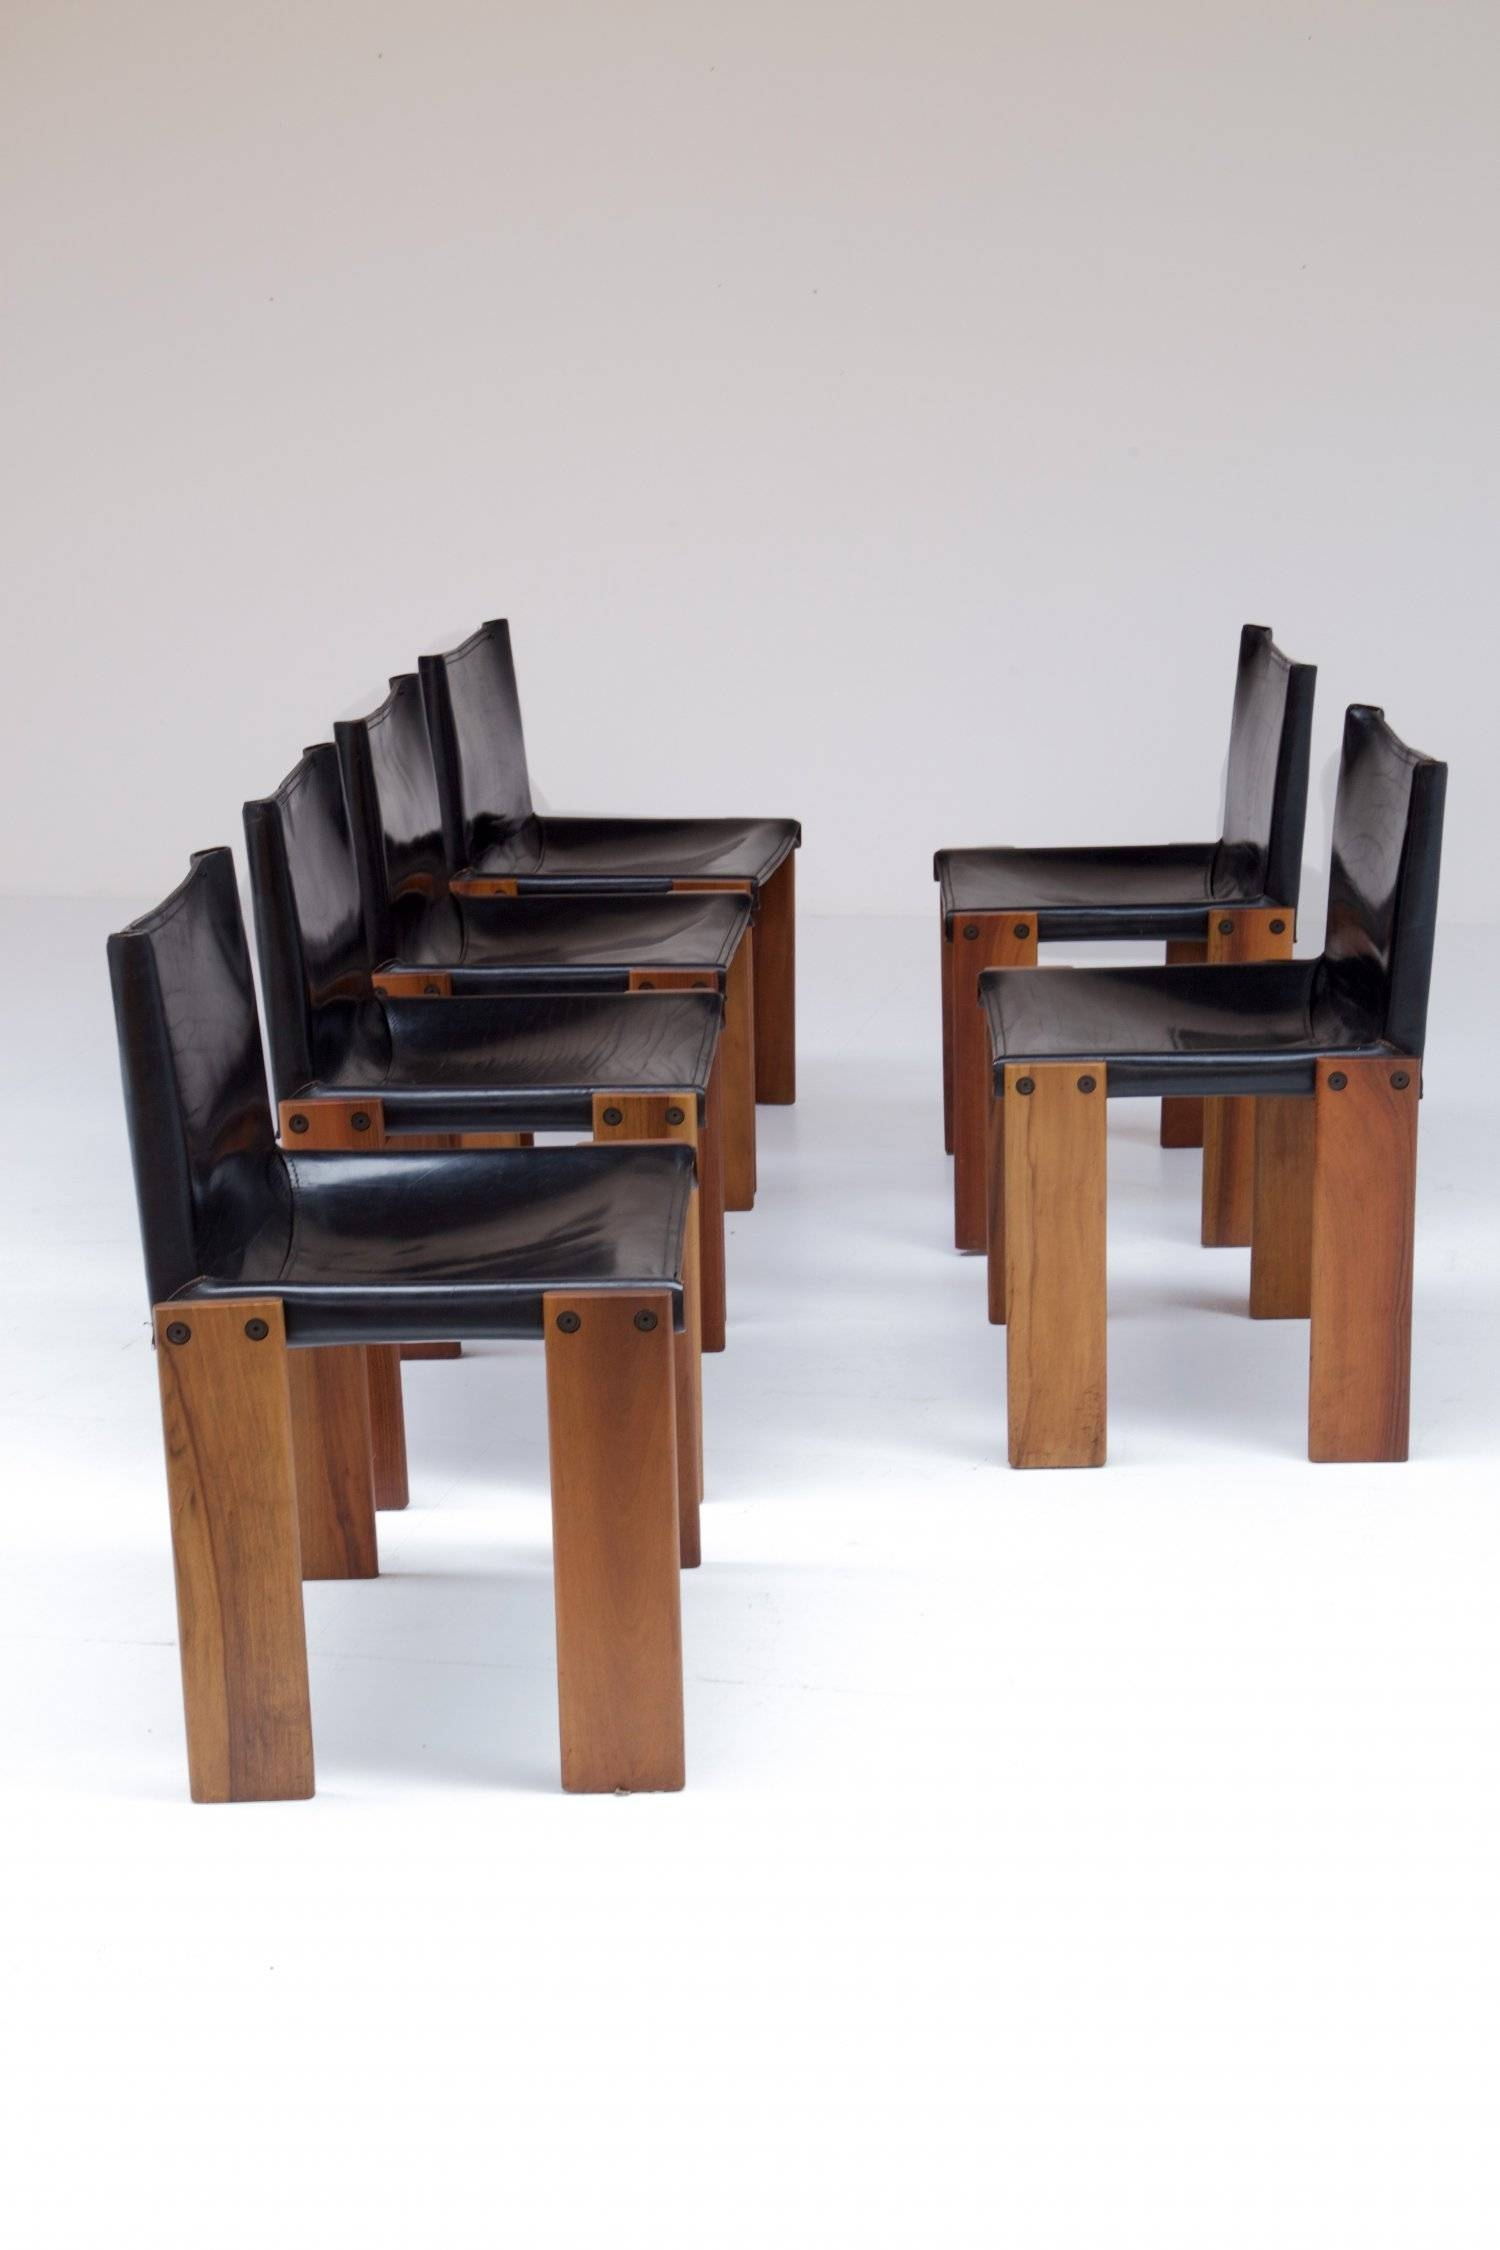 Monk Chairs Afra & Tobia Scarpa – Vanlandschoote Pertaining To Monk Chairs (View 11 of 30)